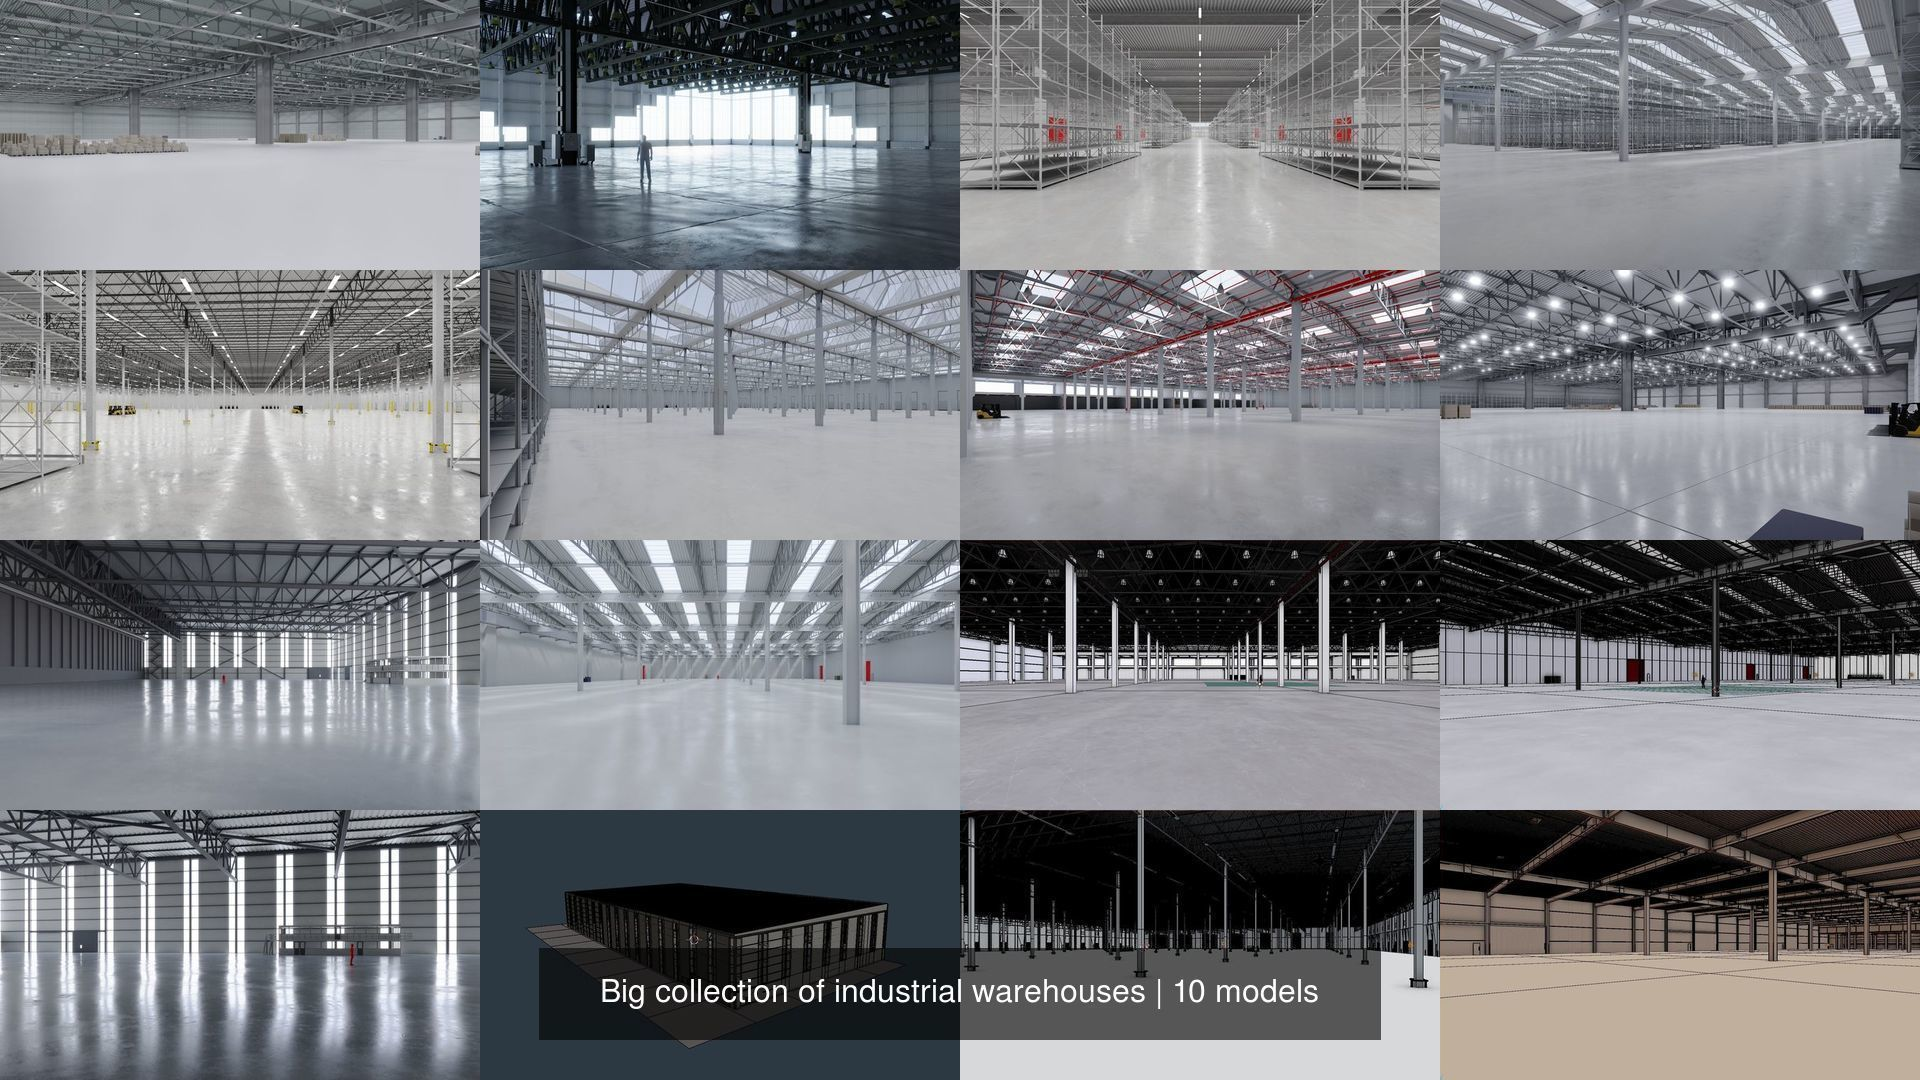 Big collection of industrial warehouses